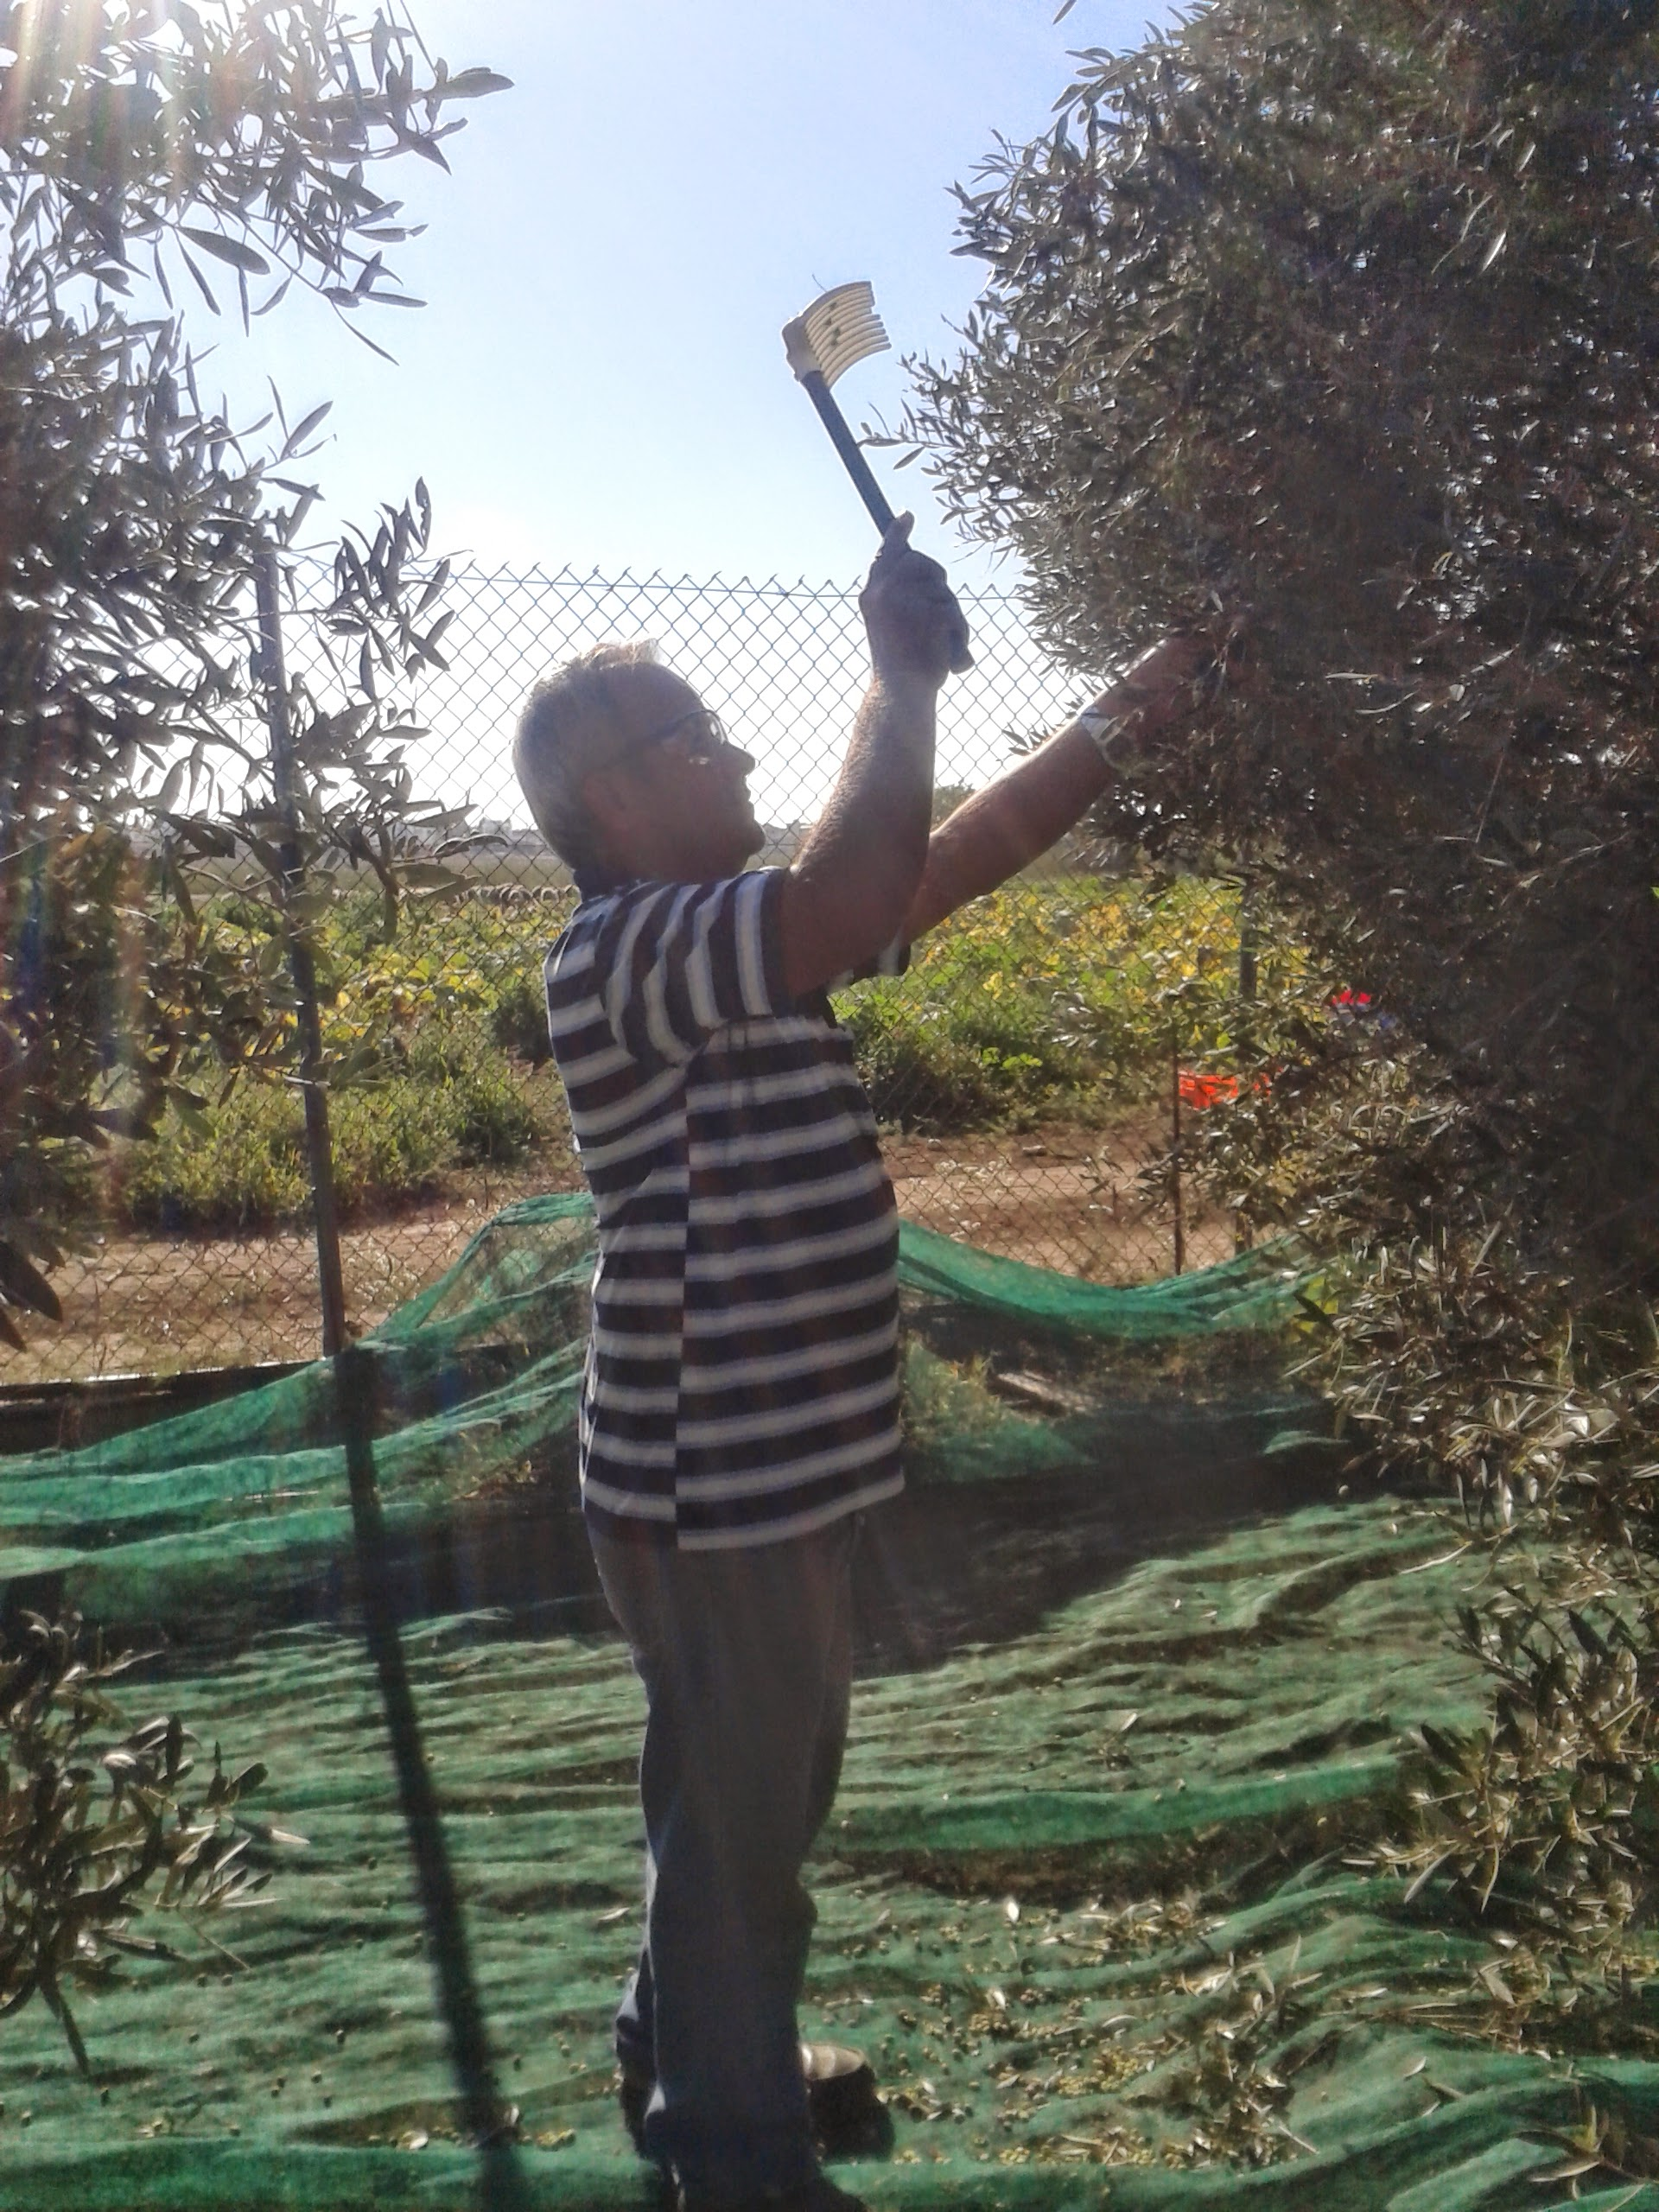 Costa harvesting the olives